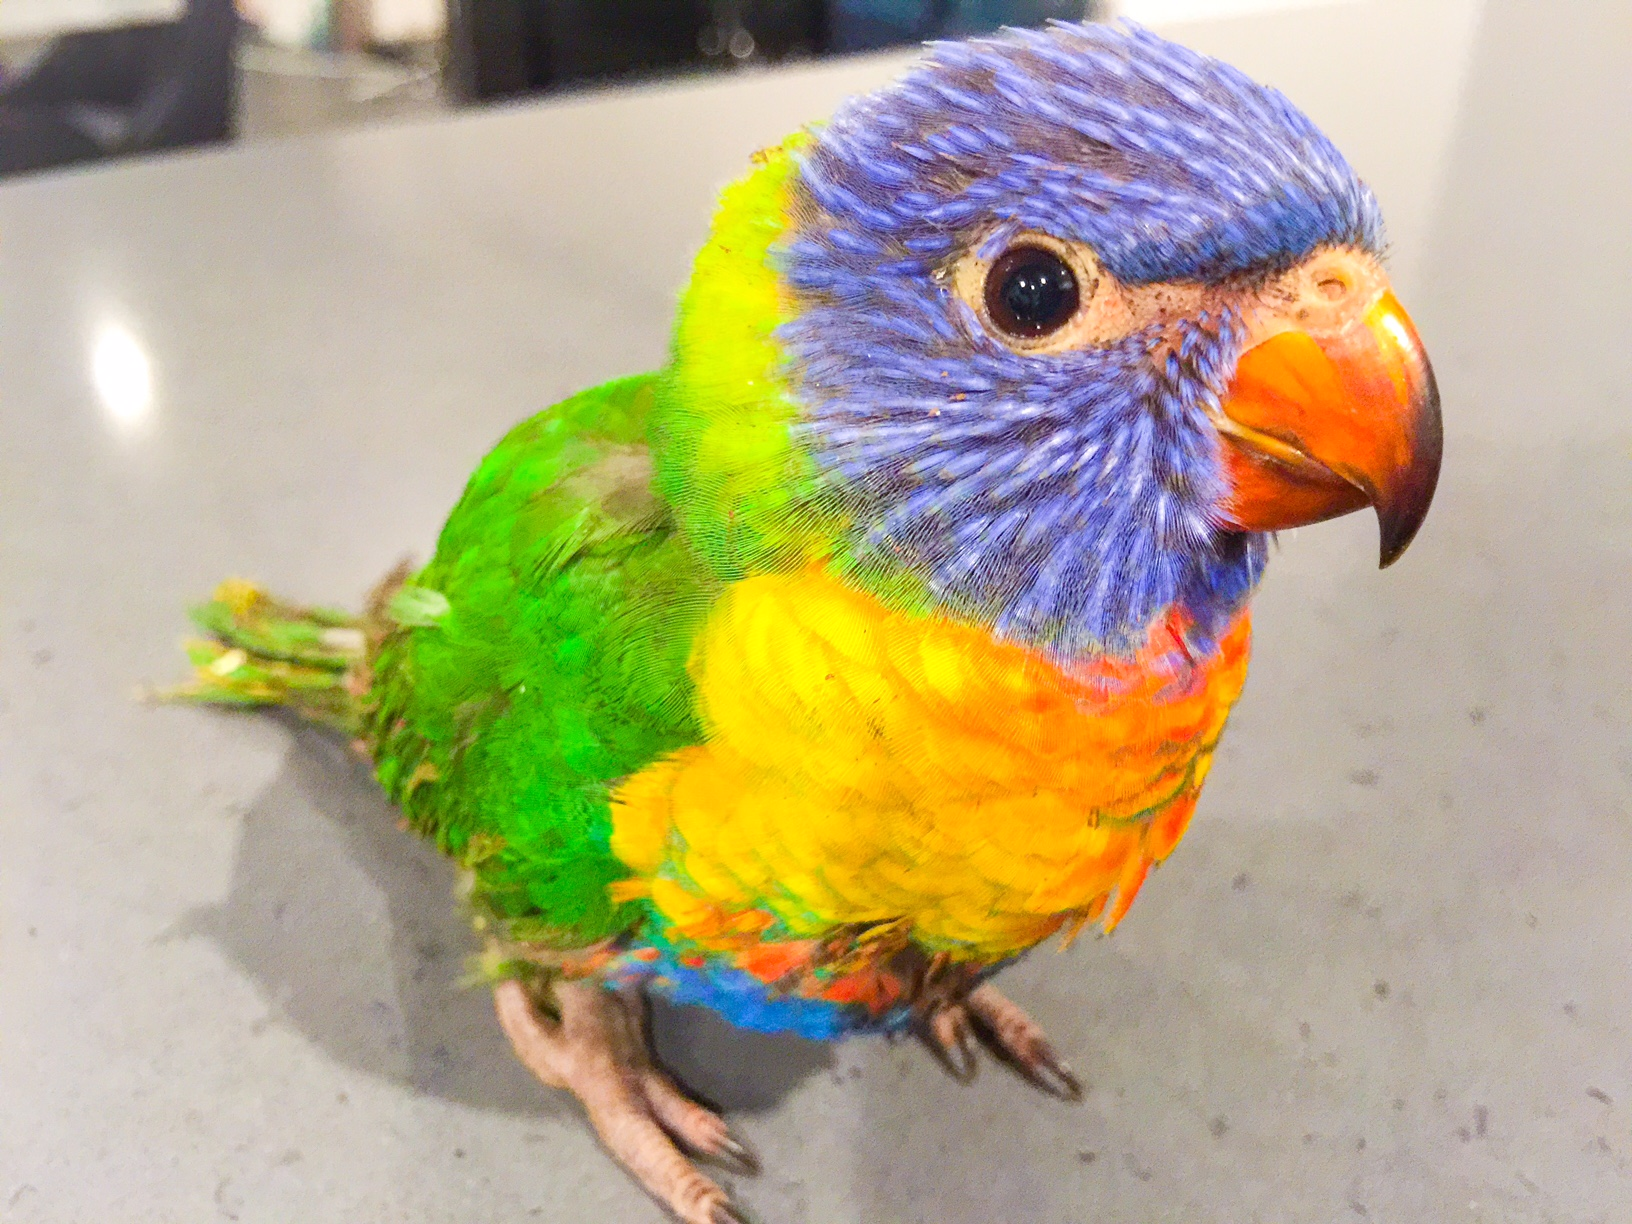 Over the Rainbow Lorikeet - Australian Bird - Perth Blogger Katie Rebekah